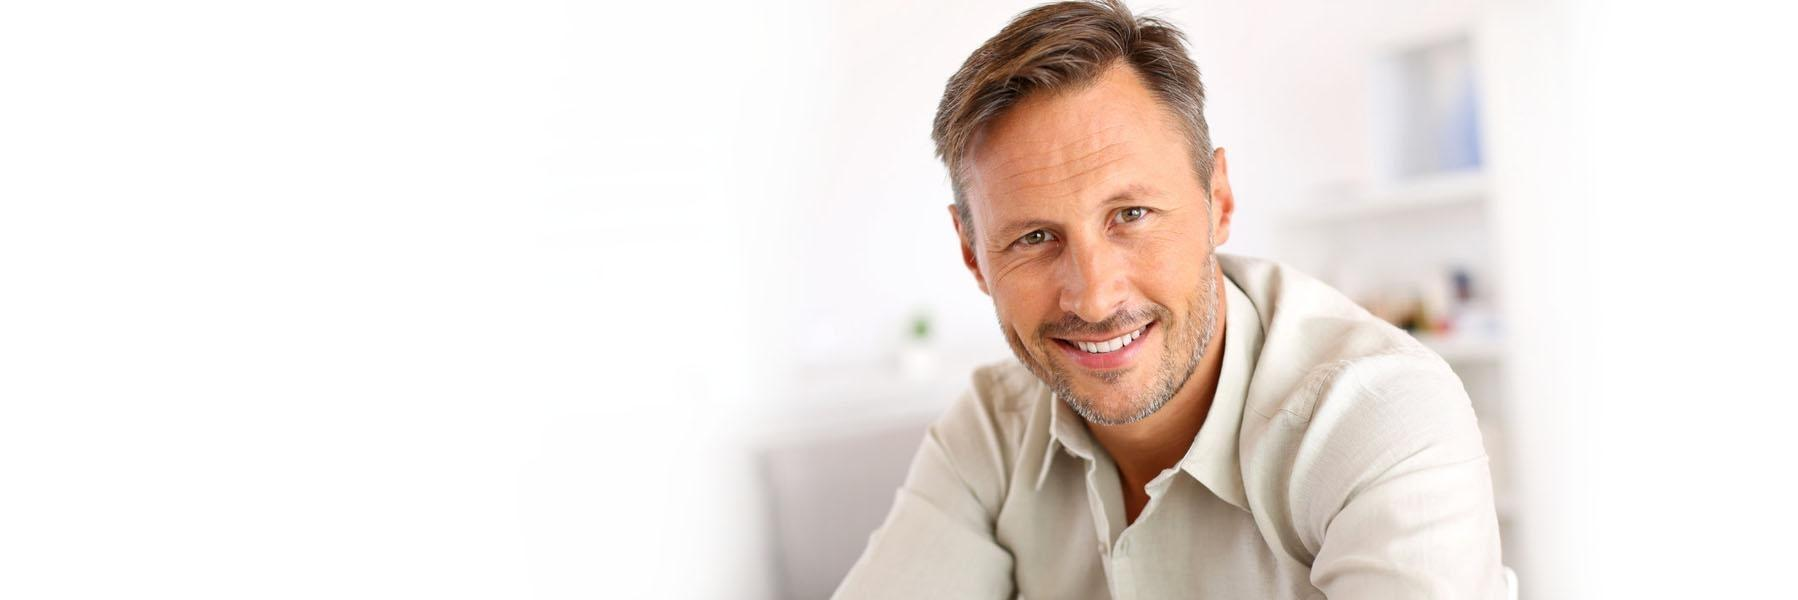 Man | Emergency Dentist Clinton Township